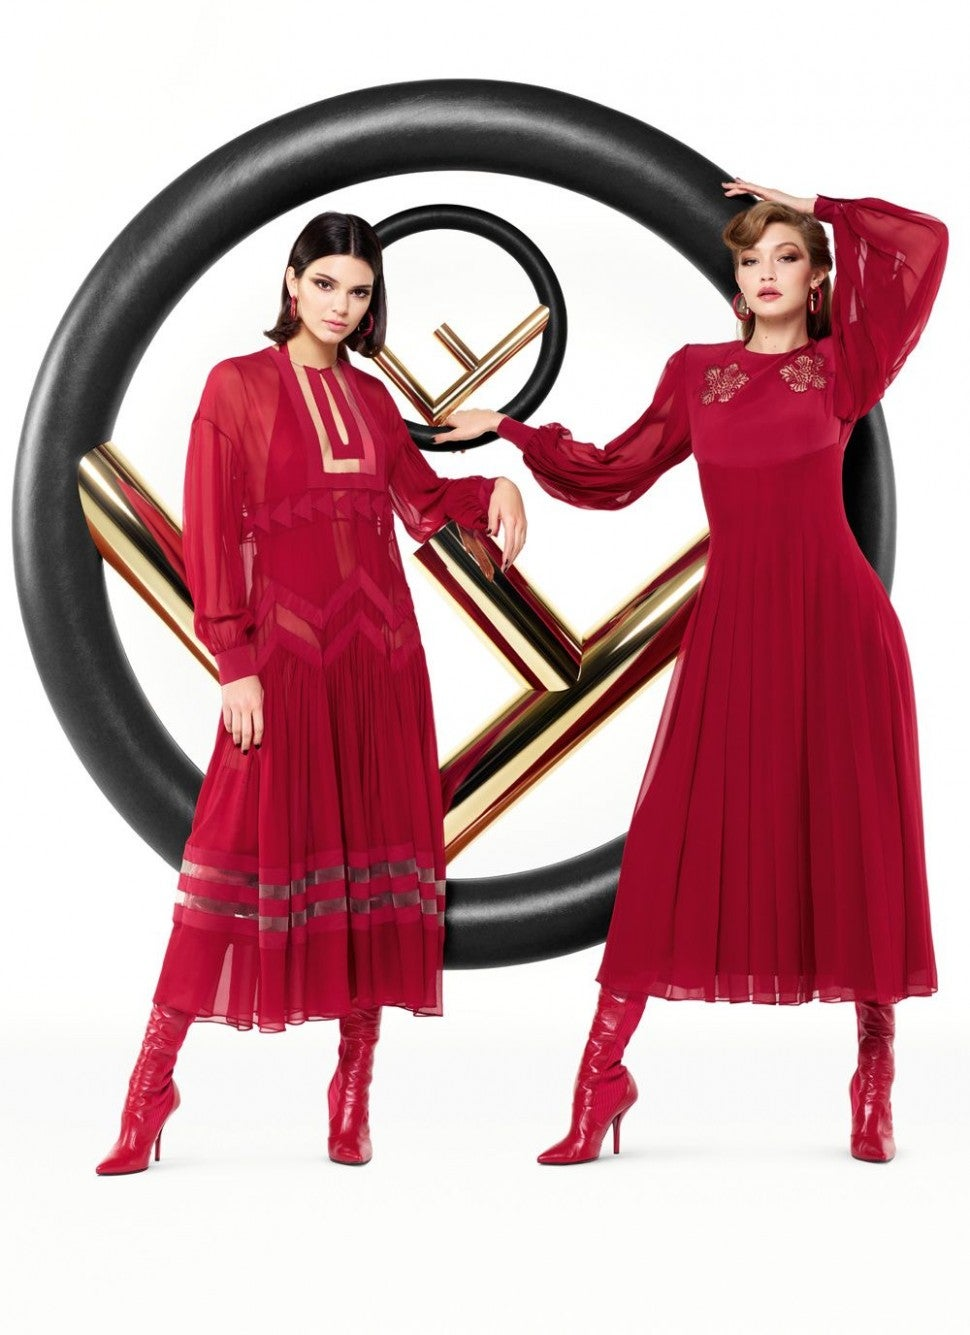 Kendall Jenner and Gigi Hadid in Fendi campaign